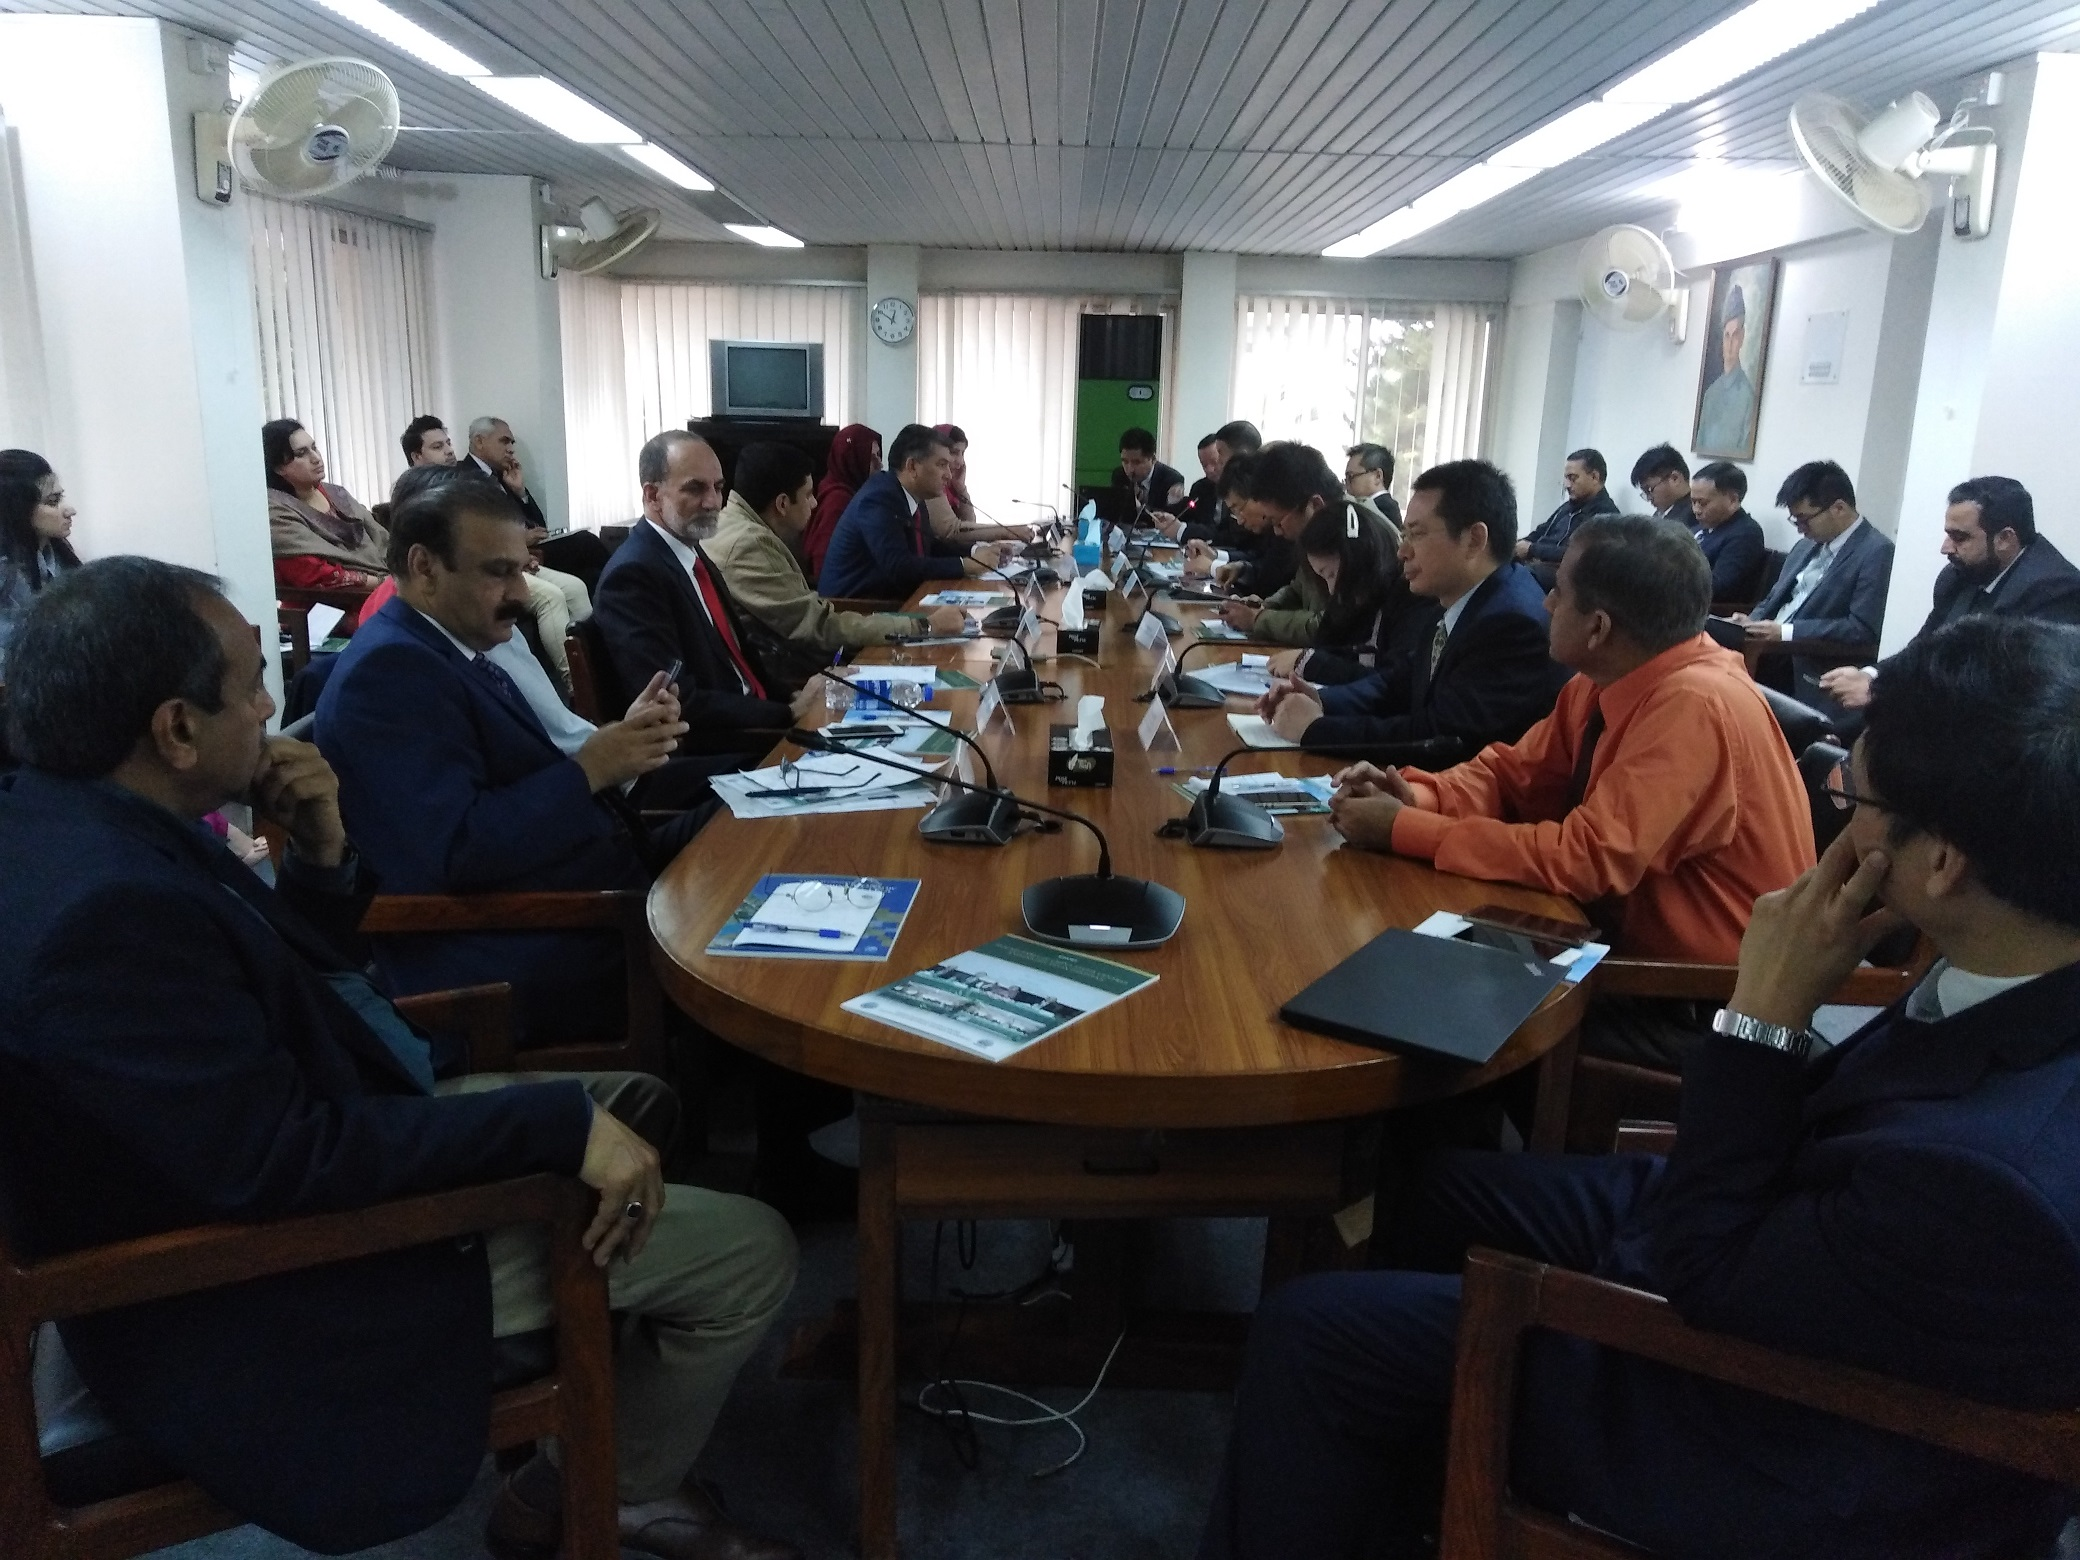 PROFESSOR DR ZAHID ANWAR REPRESENTED CHINA STUDY CENTRE AT THE INTERNATIONAL ROUND-TABLE AT ISSI, ISLAMABAD ON 21ST NOVEMBER 2019